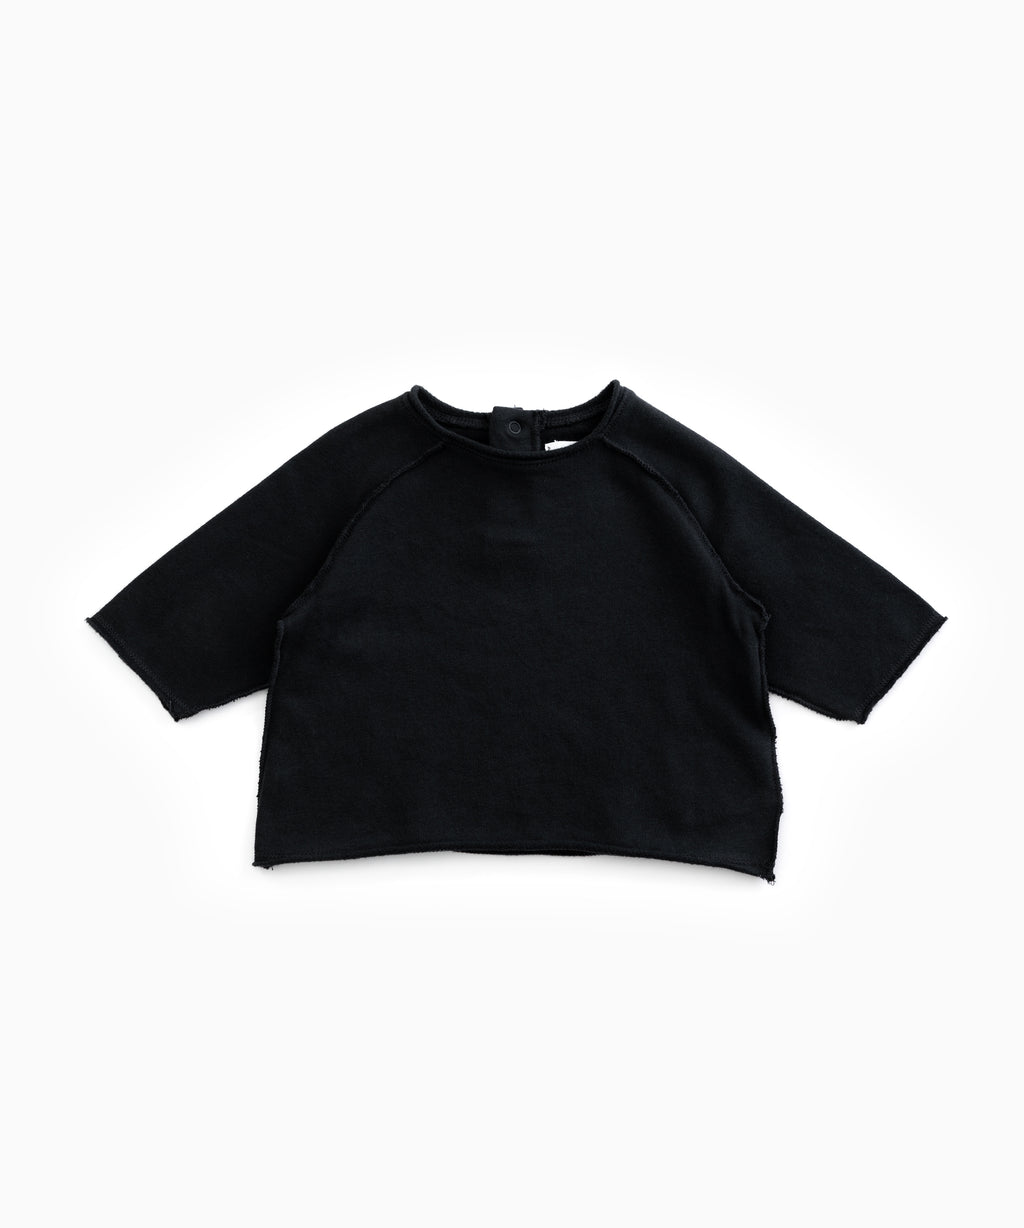 PLAY-UP / Fleece sweater, BABY